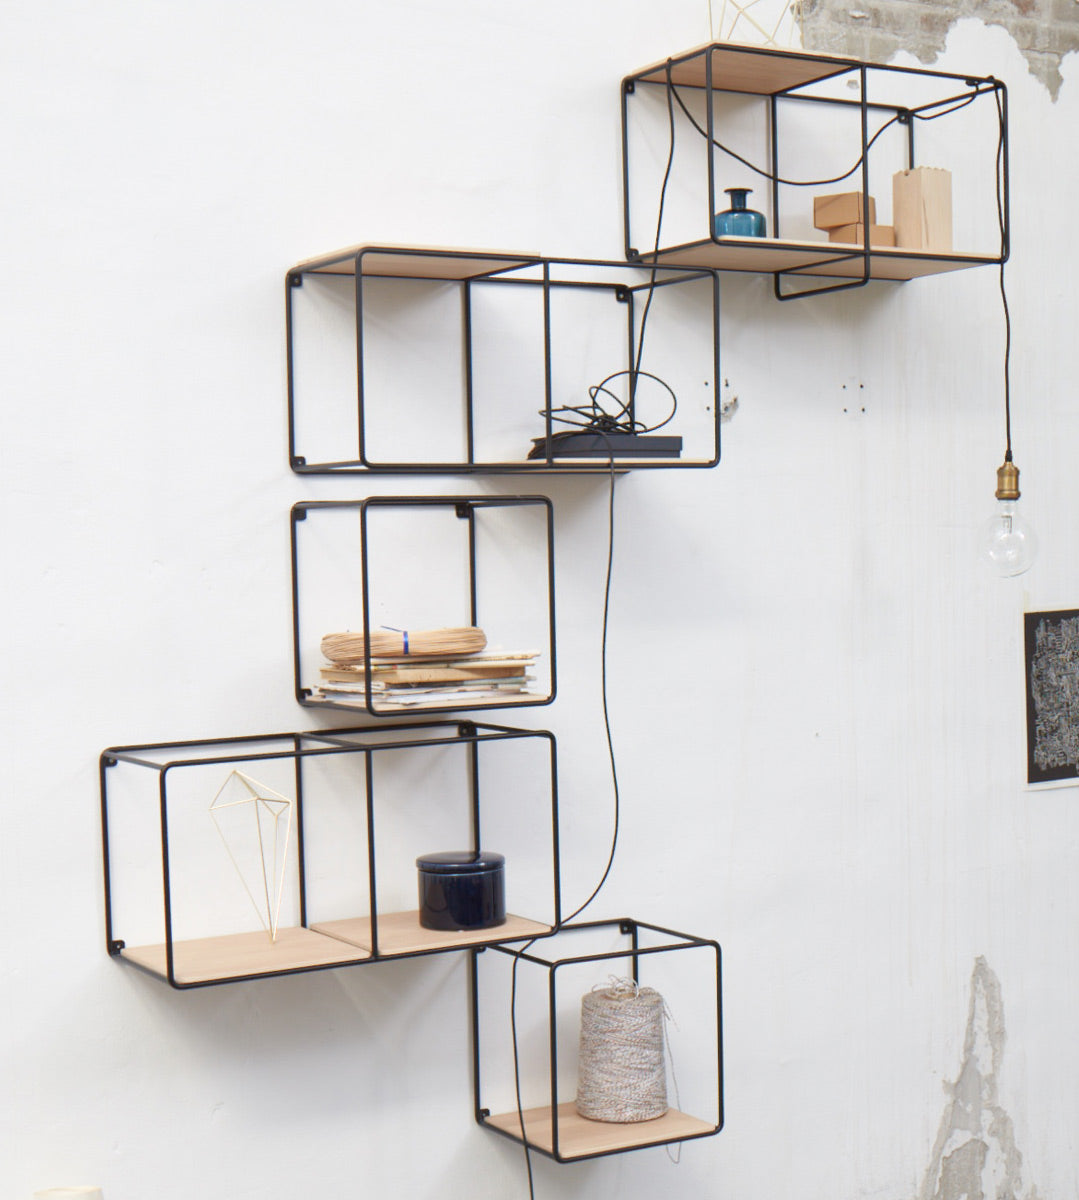 Anywhere 1 x 2 (2 Shelves) - Korridor - Do Shop